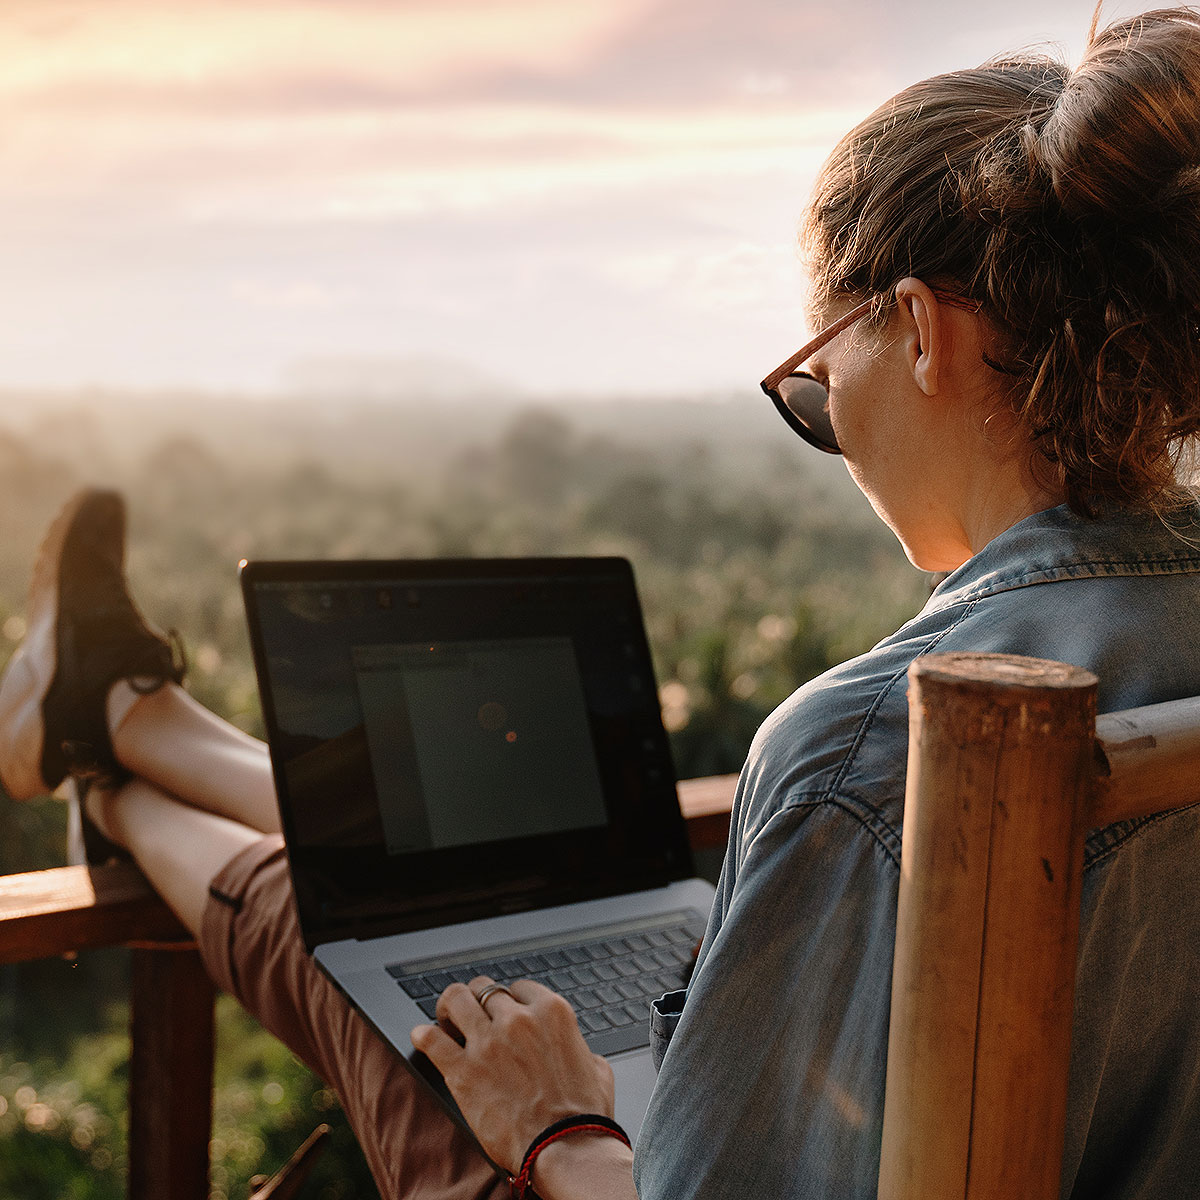 image of woman working on laptop with a scenic view